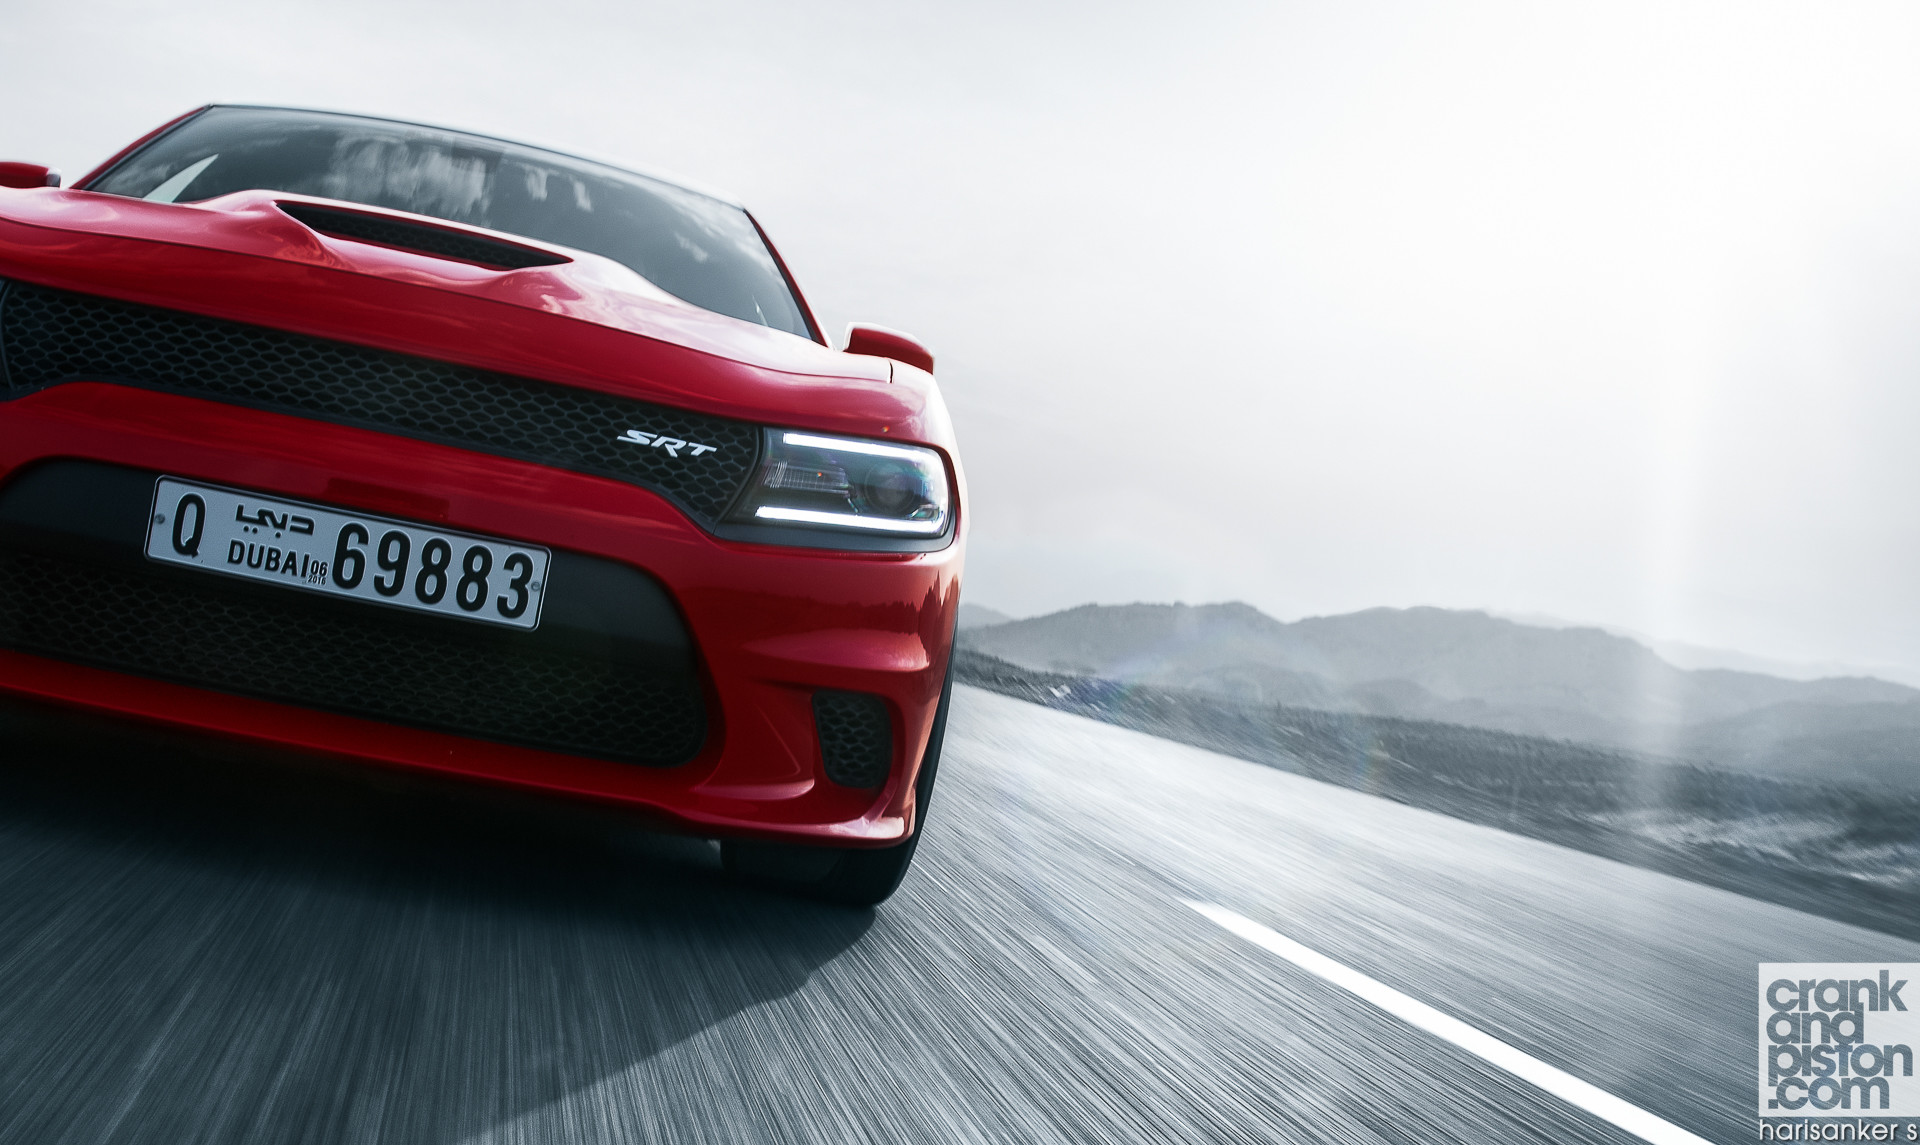 Dodge Charger Hellcat WALLPAPERS crankandpiston-2 Dodge Charger Hellcat  WALLPAPERS crankandpiston-4 …